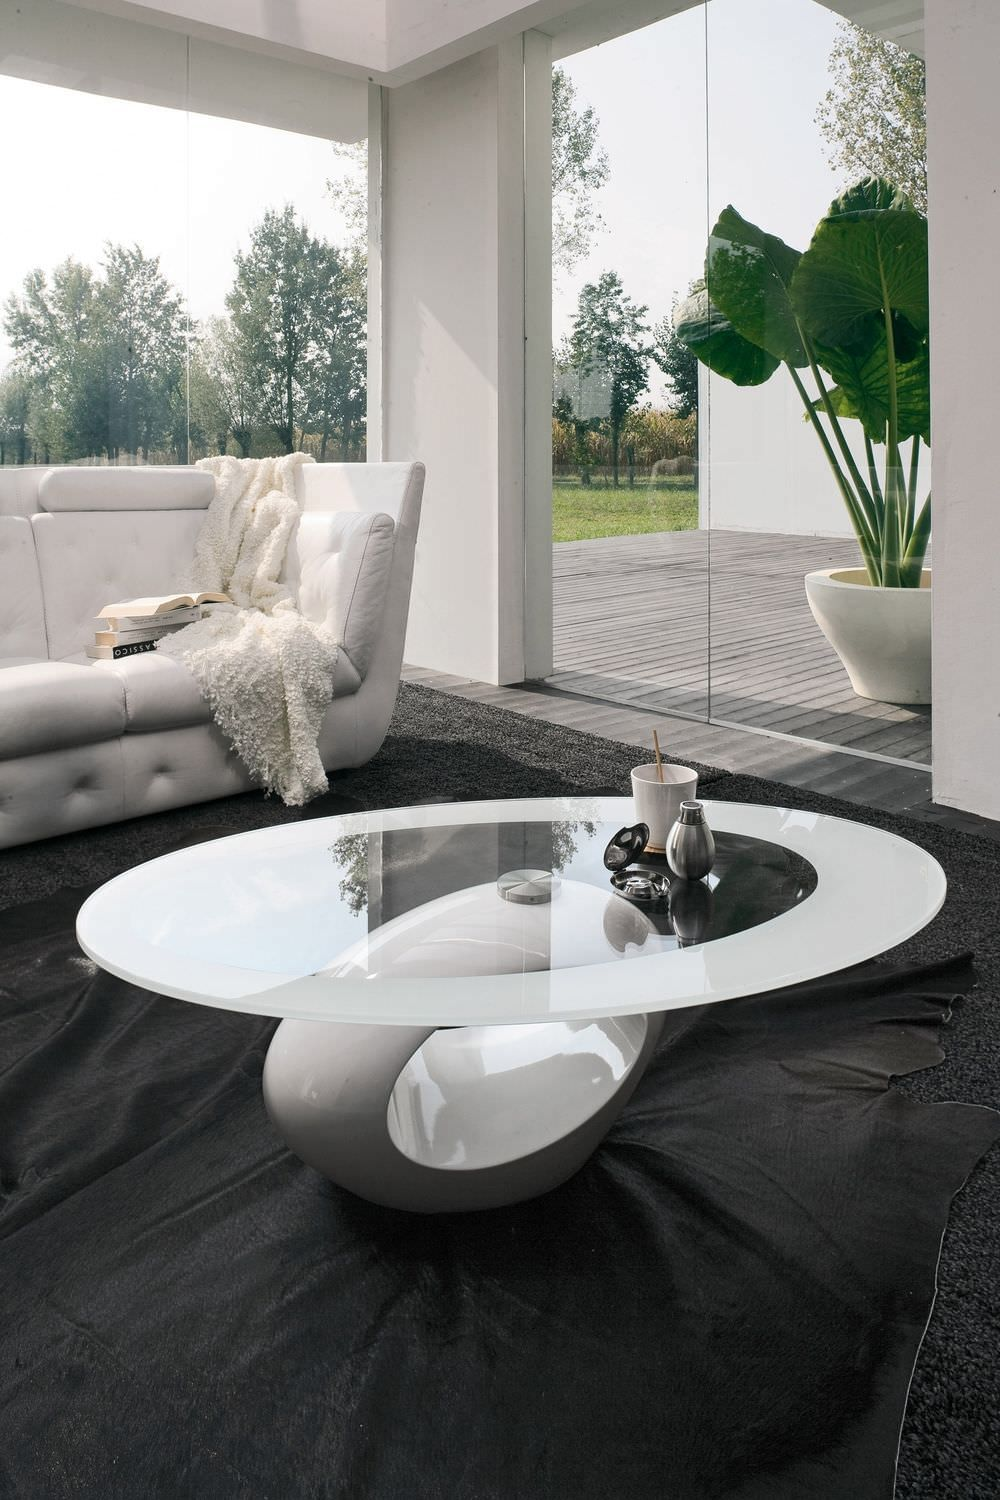 Coffee Table Contemporary Glass Oval Dubai Tonin Casa Coffee Table Contemporary Coffee Table Contemporary Bedroom Furniture [ 1500 x 1000 Pixel ]